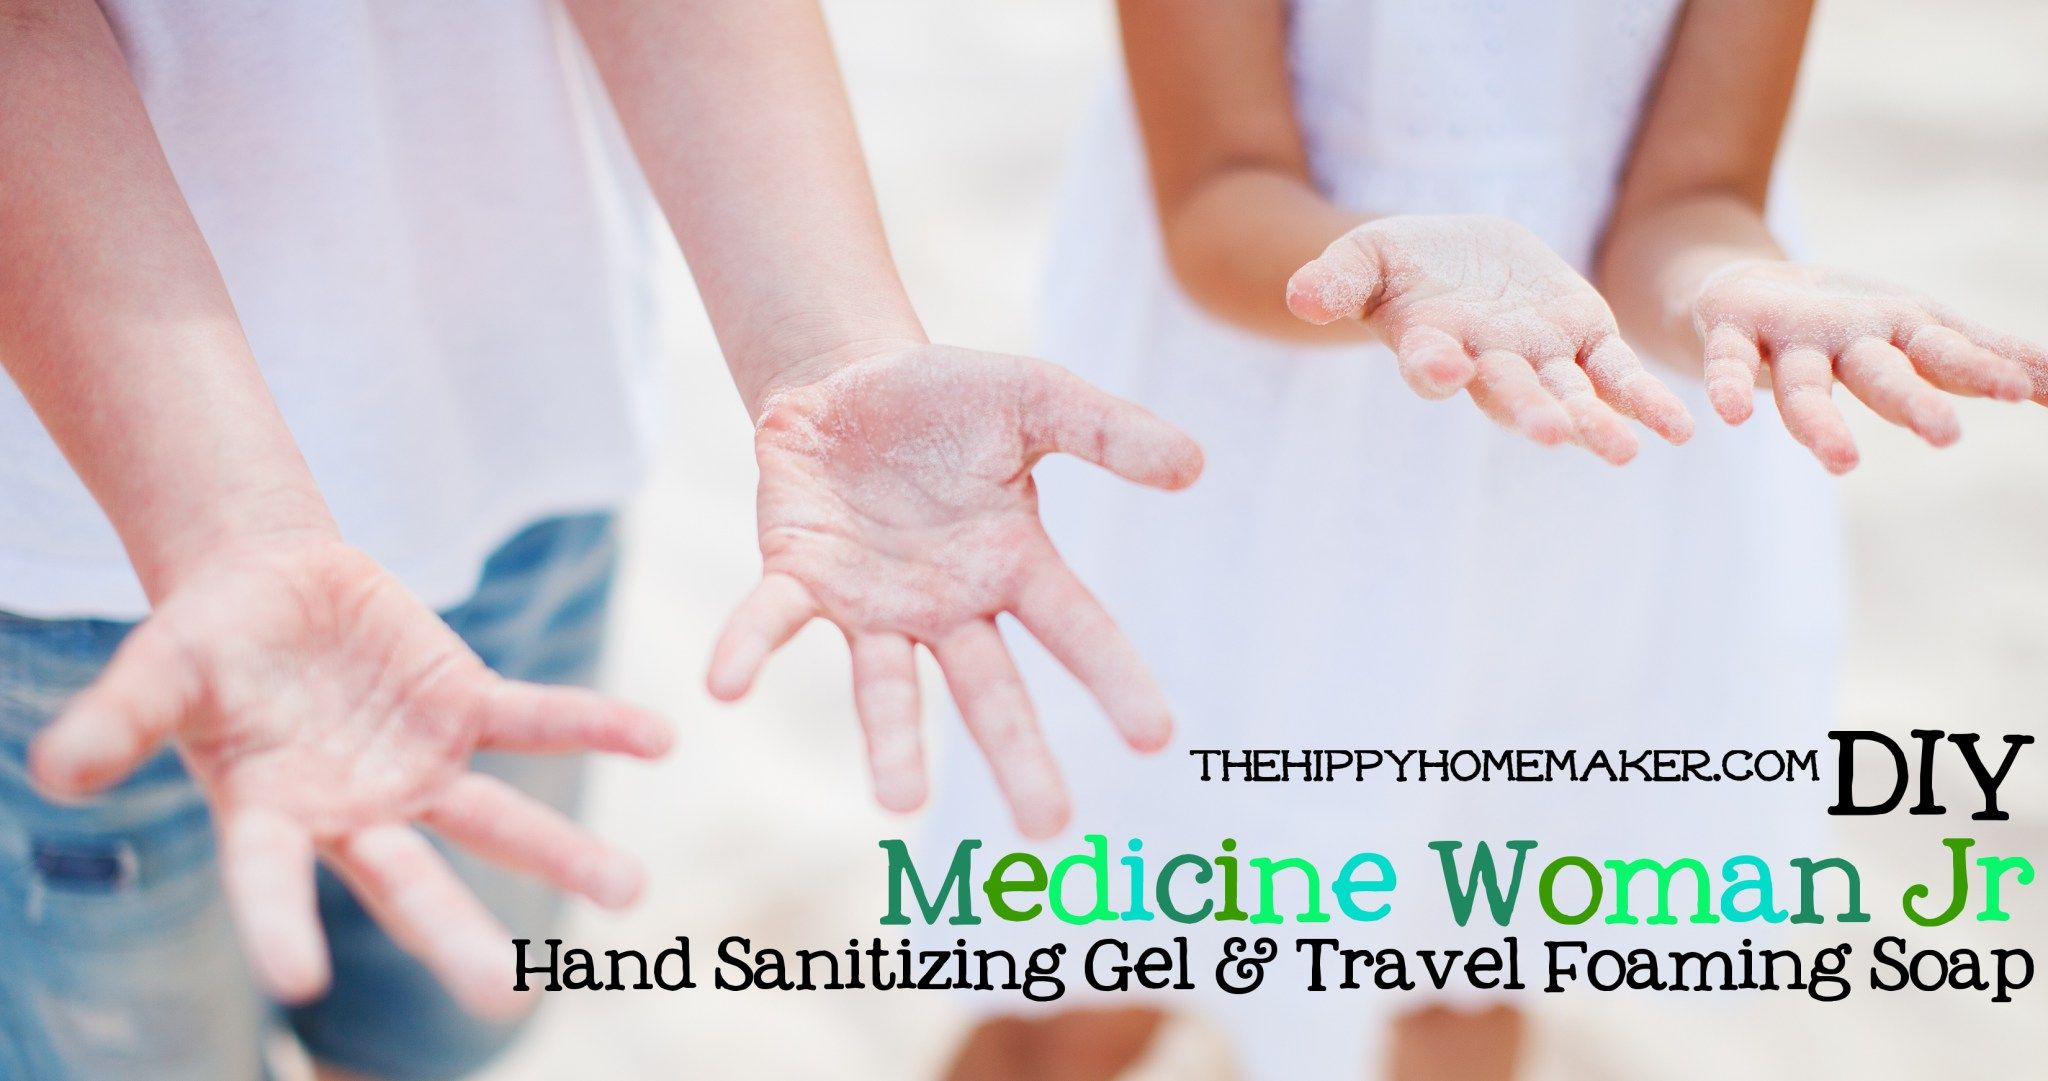 Diy Medicine Woman Jr Hand Sanitizing Gel Travel Foaming Soap